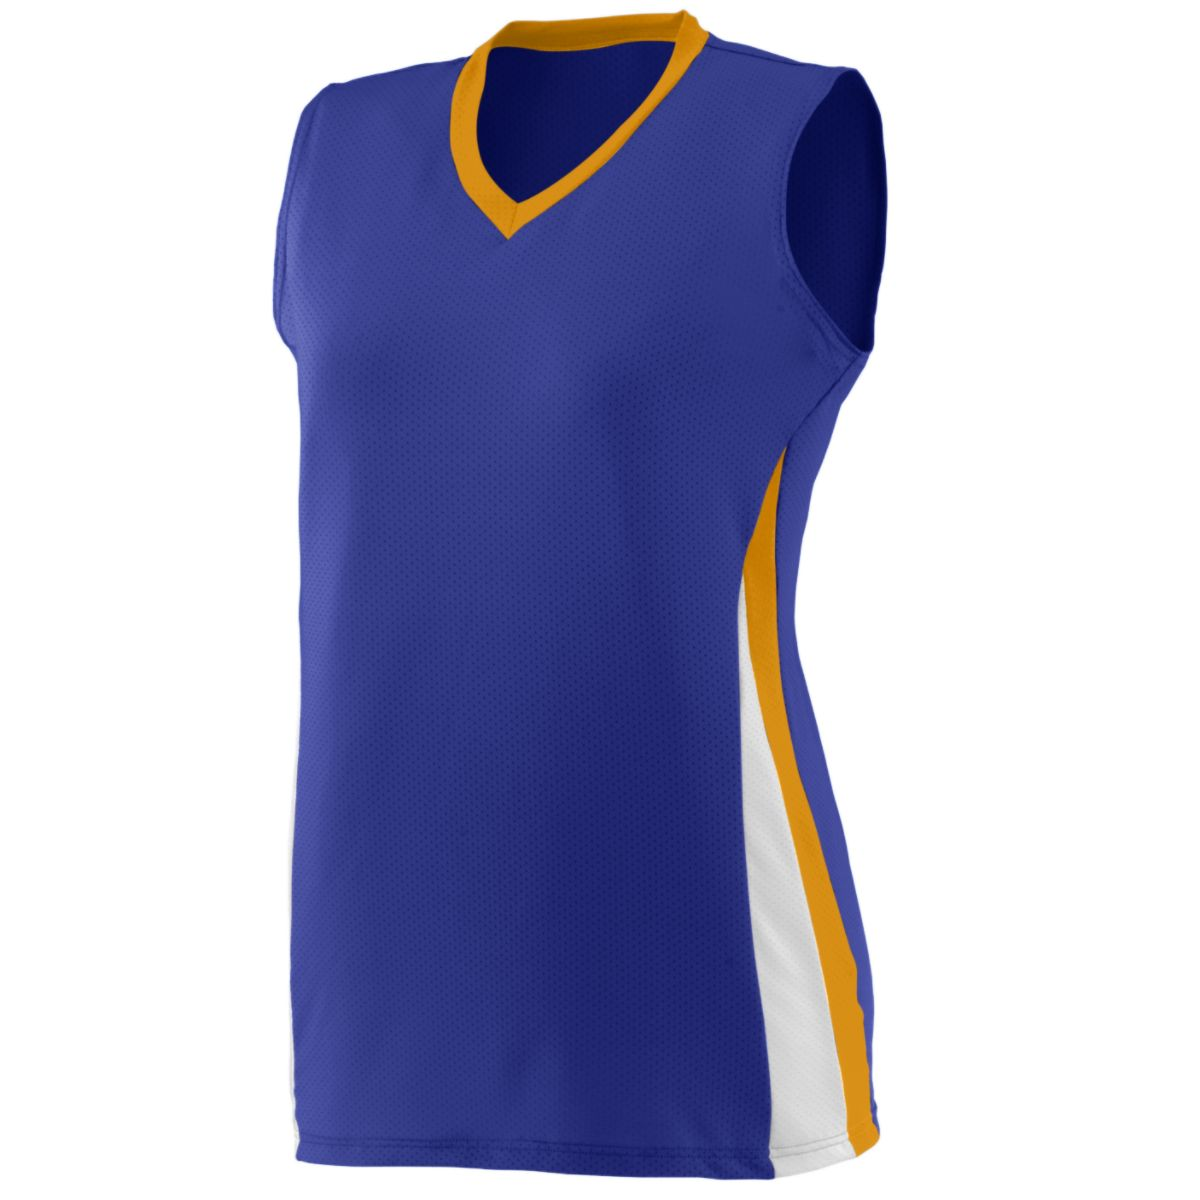 Augusta Ladies Tornado Jersey Pu/Gd/Wh M - image 1 of 1